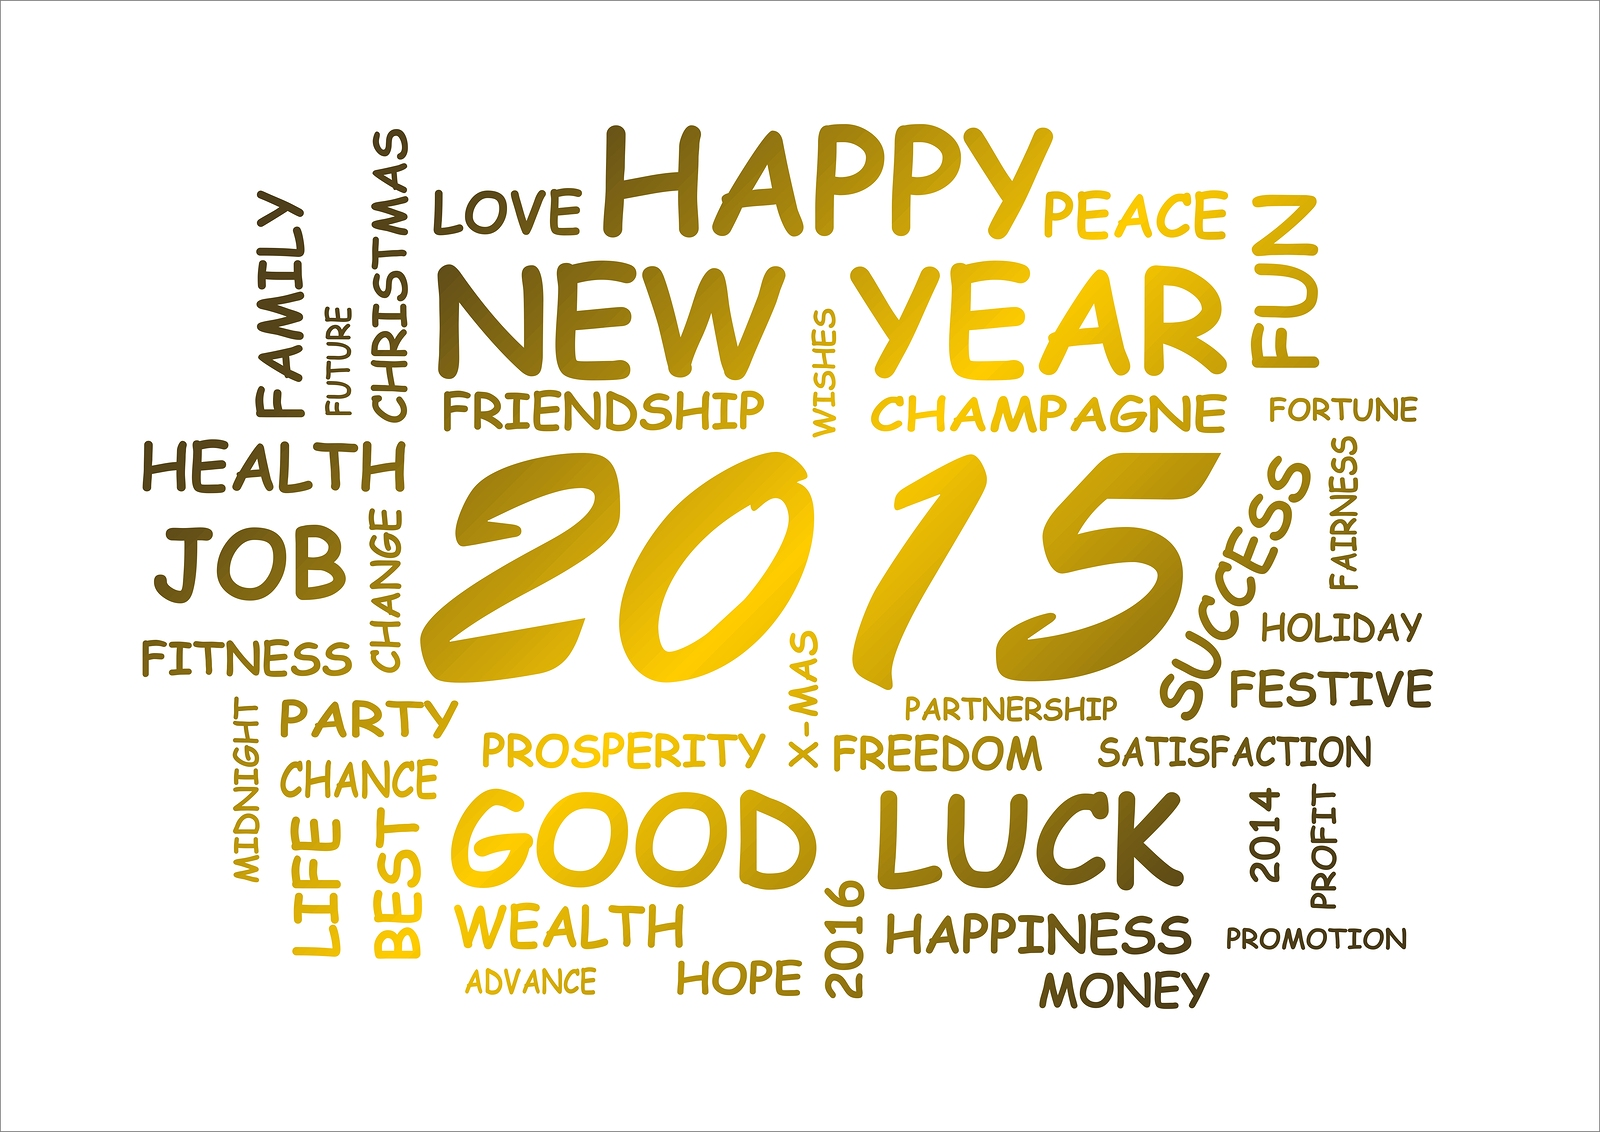 wishing you your families a very happy new year look forward to a bigger brighter joyful happy healthy and more insightful 2015